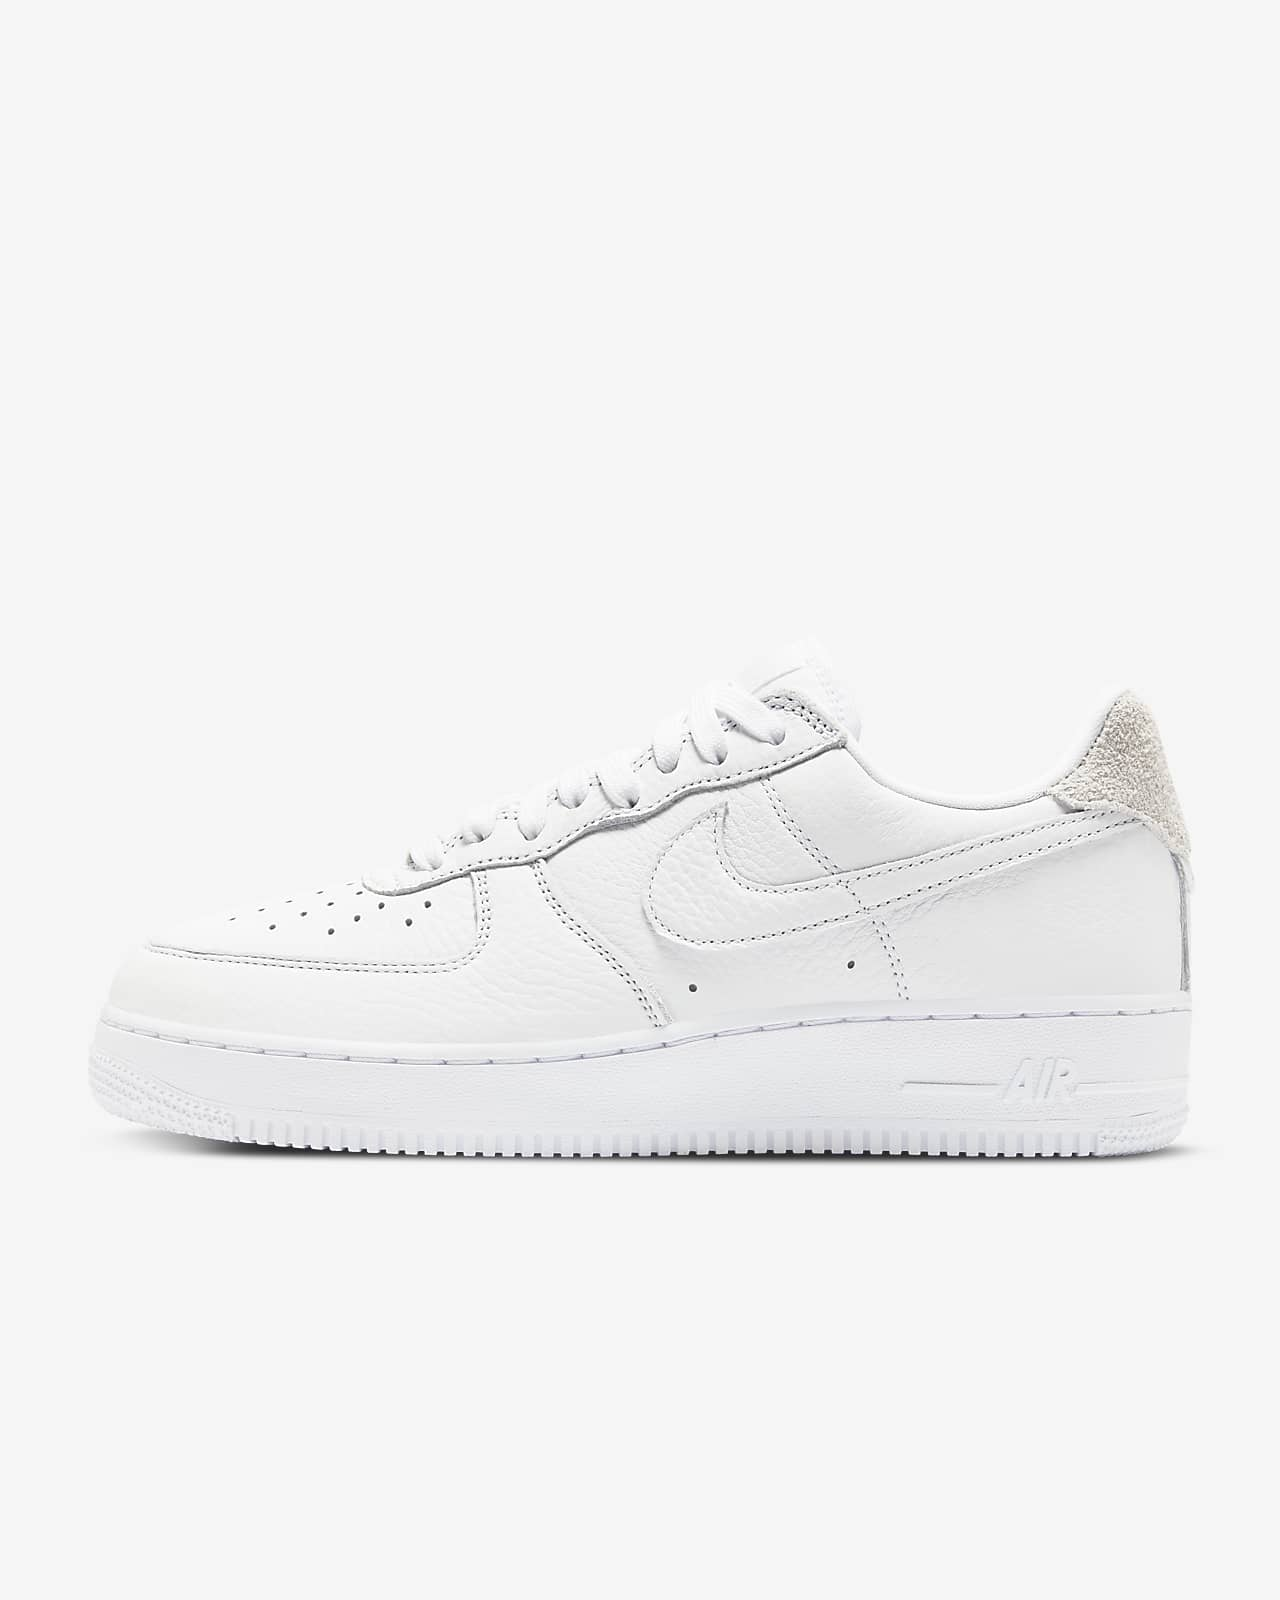 Chaussure Nike Air Force 1 '07 Craft pour Homme